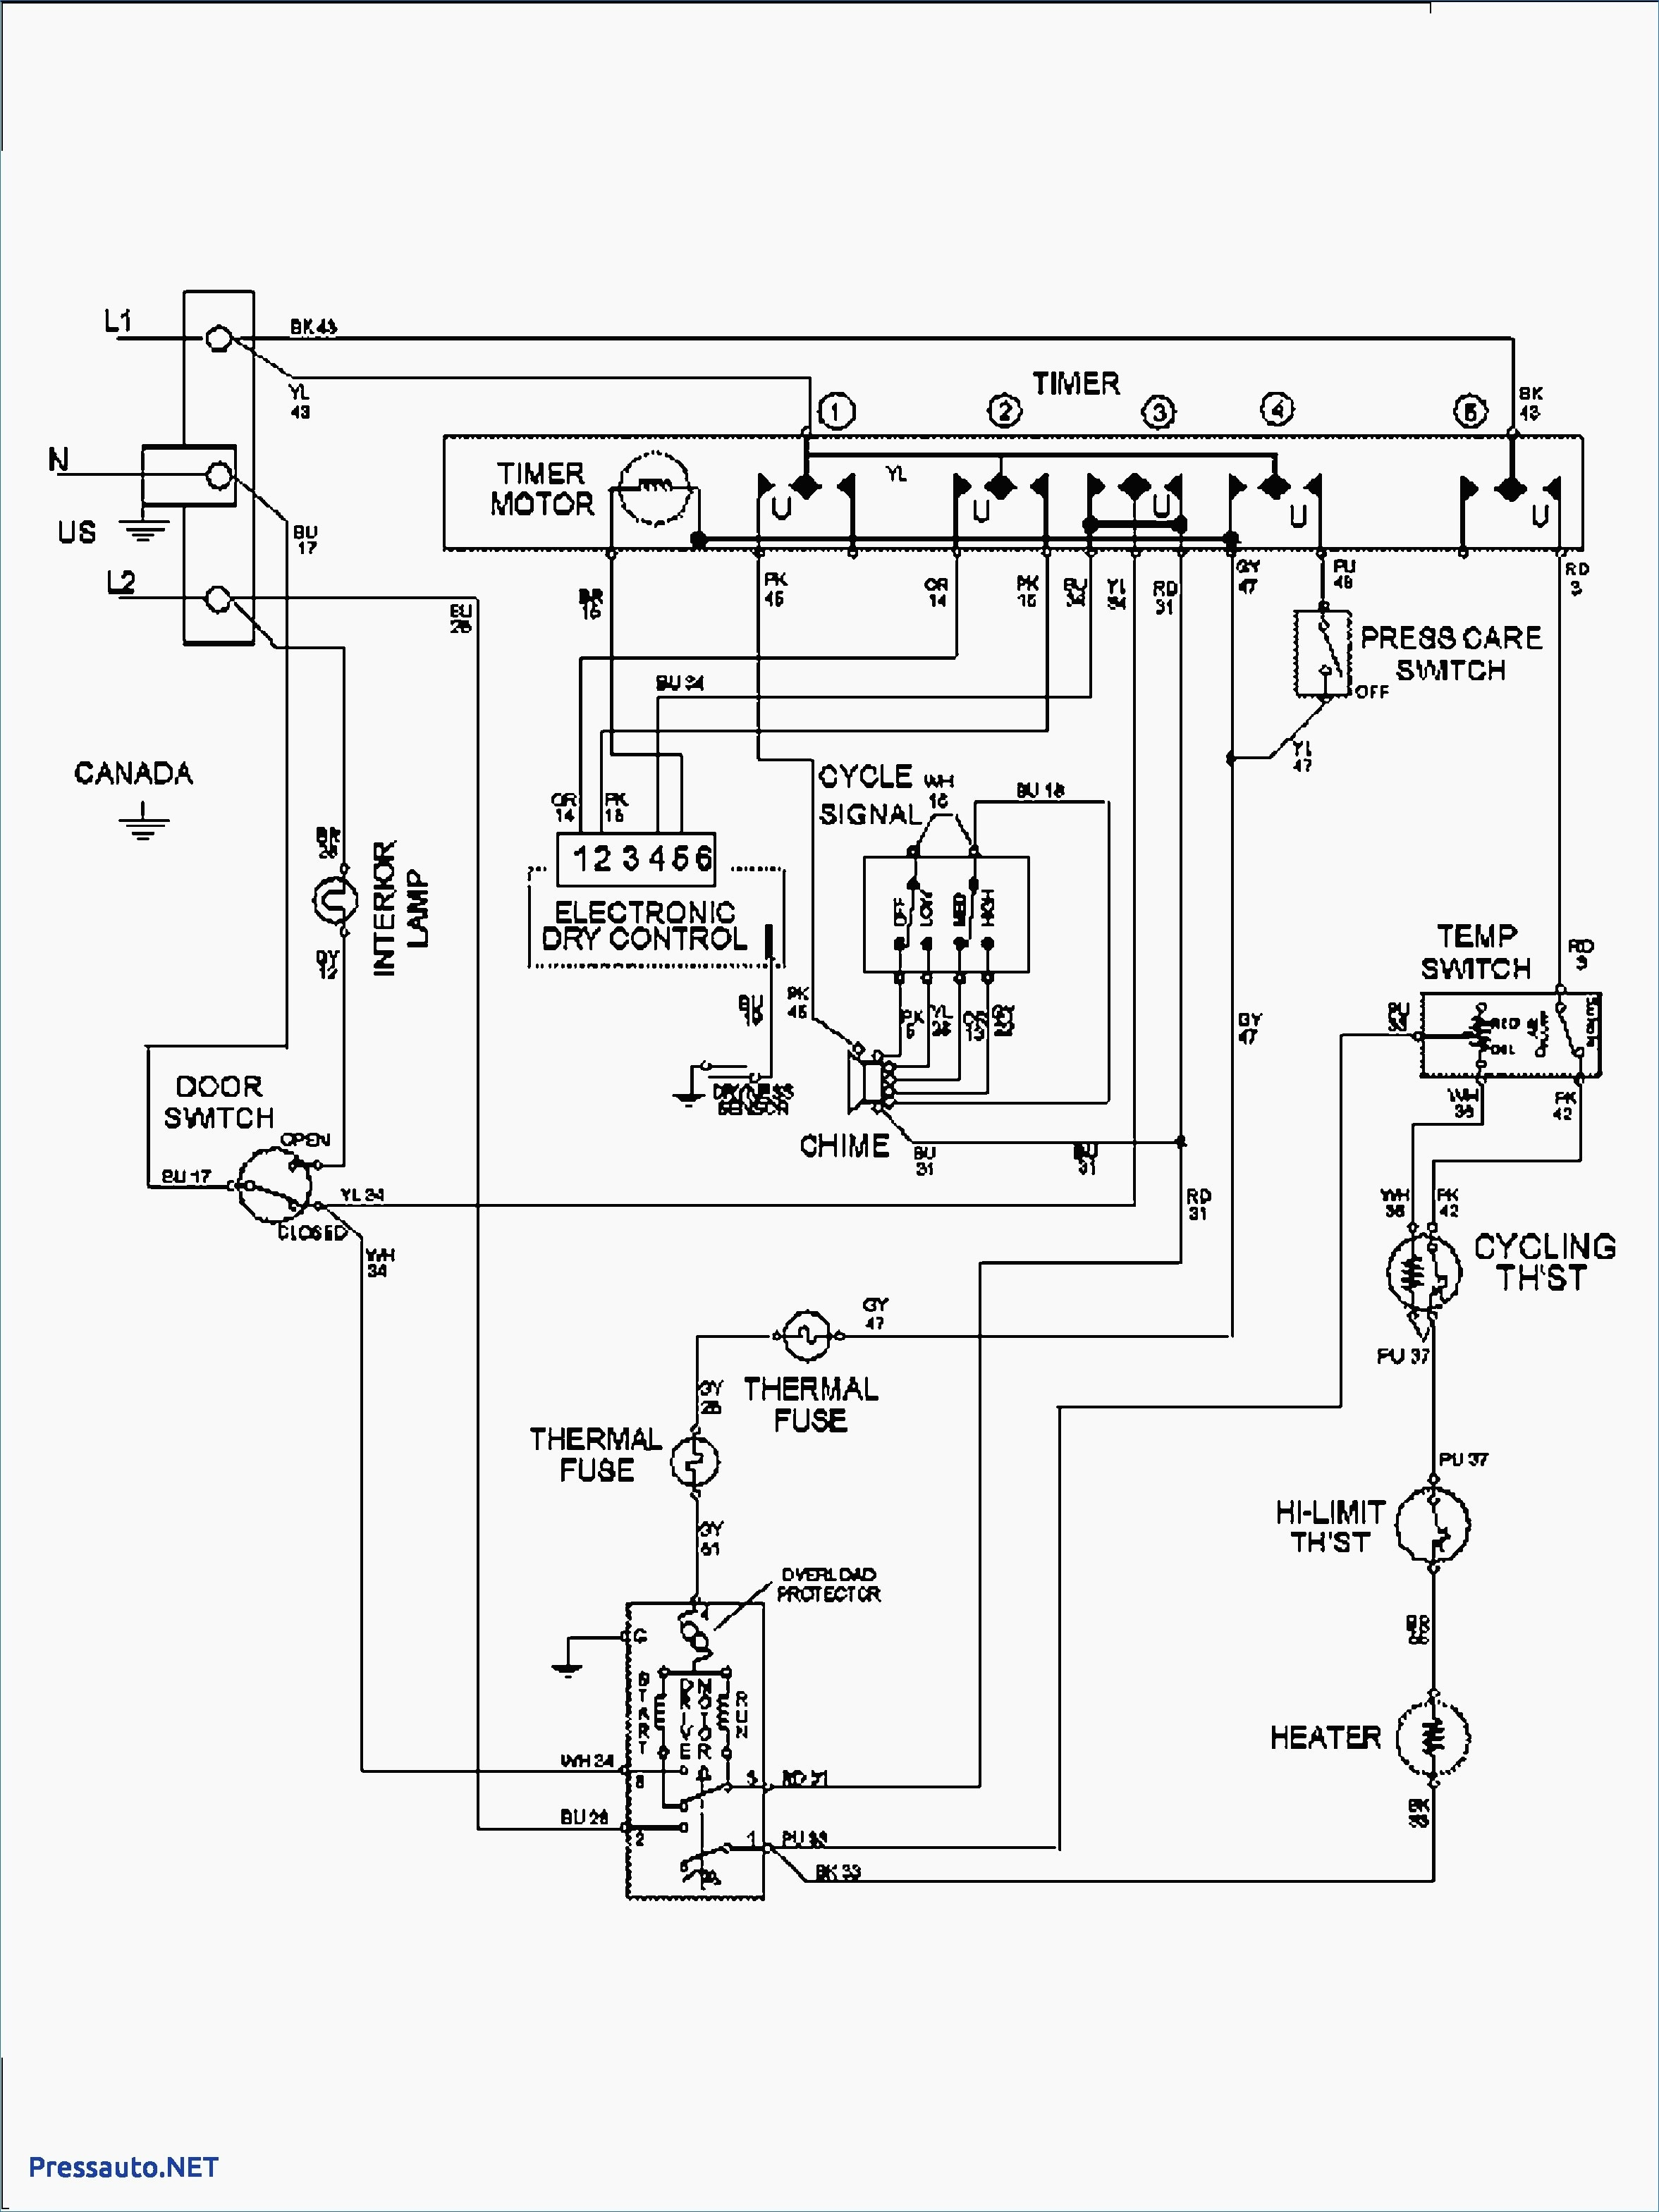 whirlpool dryer wiring diagram Download-Wiring Diagram Appliance Dryer Inspirationa Amana Dryer Wiring Diagram Fresh for Whirlpool Unbelievable Chromatex 17-m